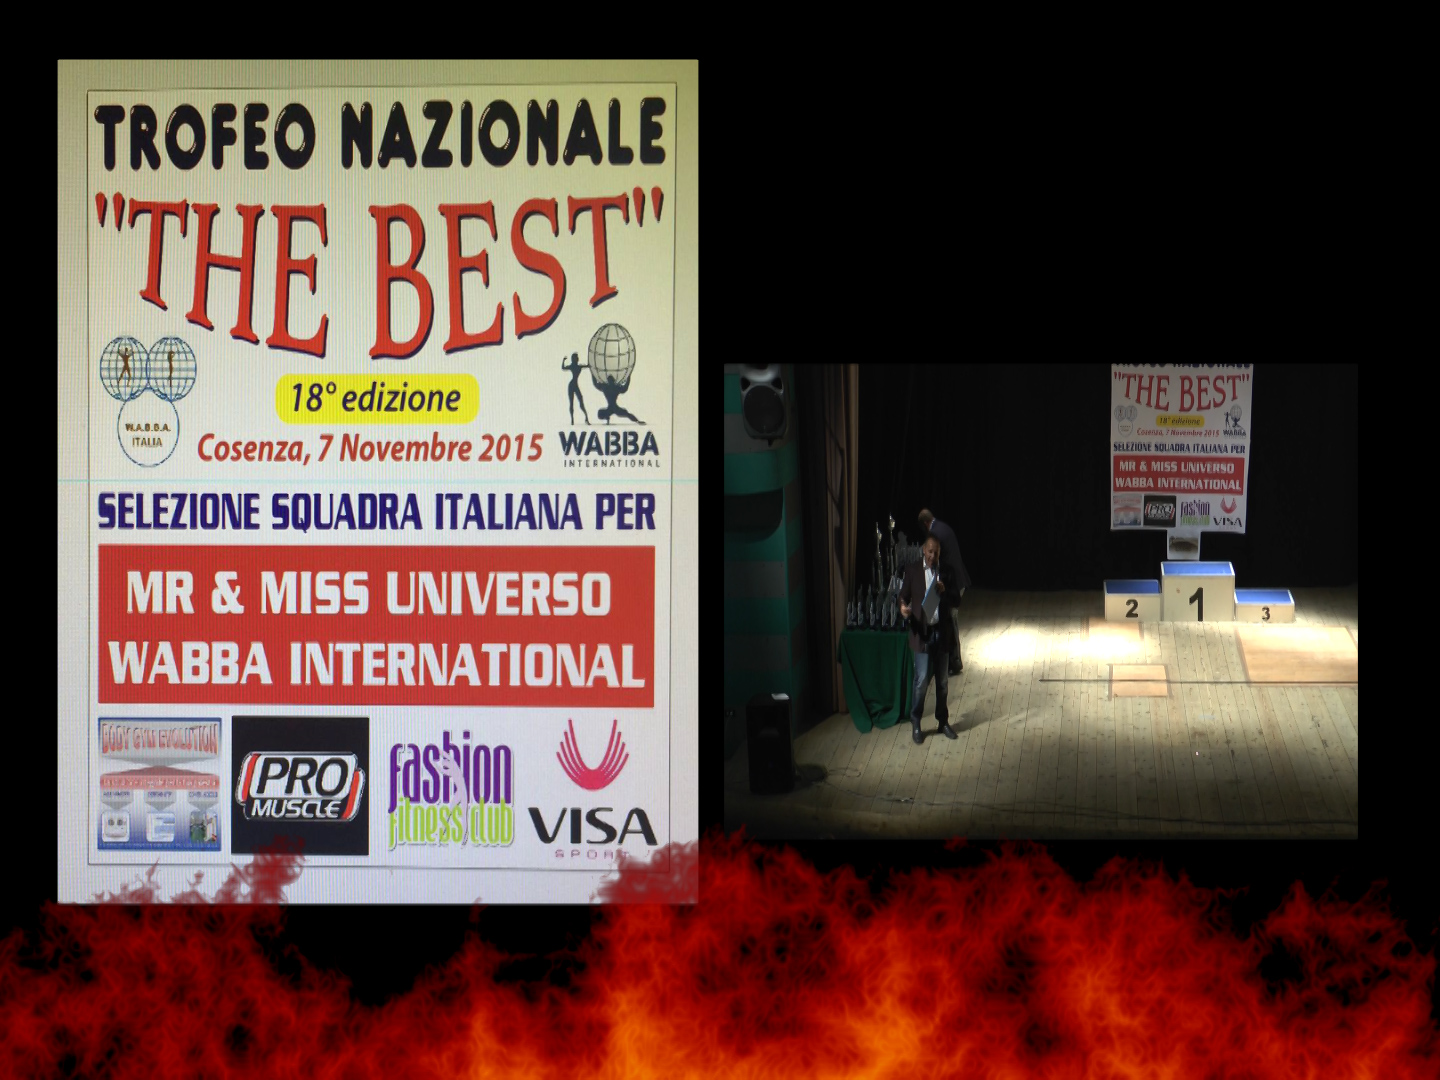 Trofeo The Best 18 Ed. Parte I